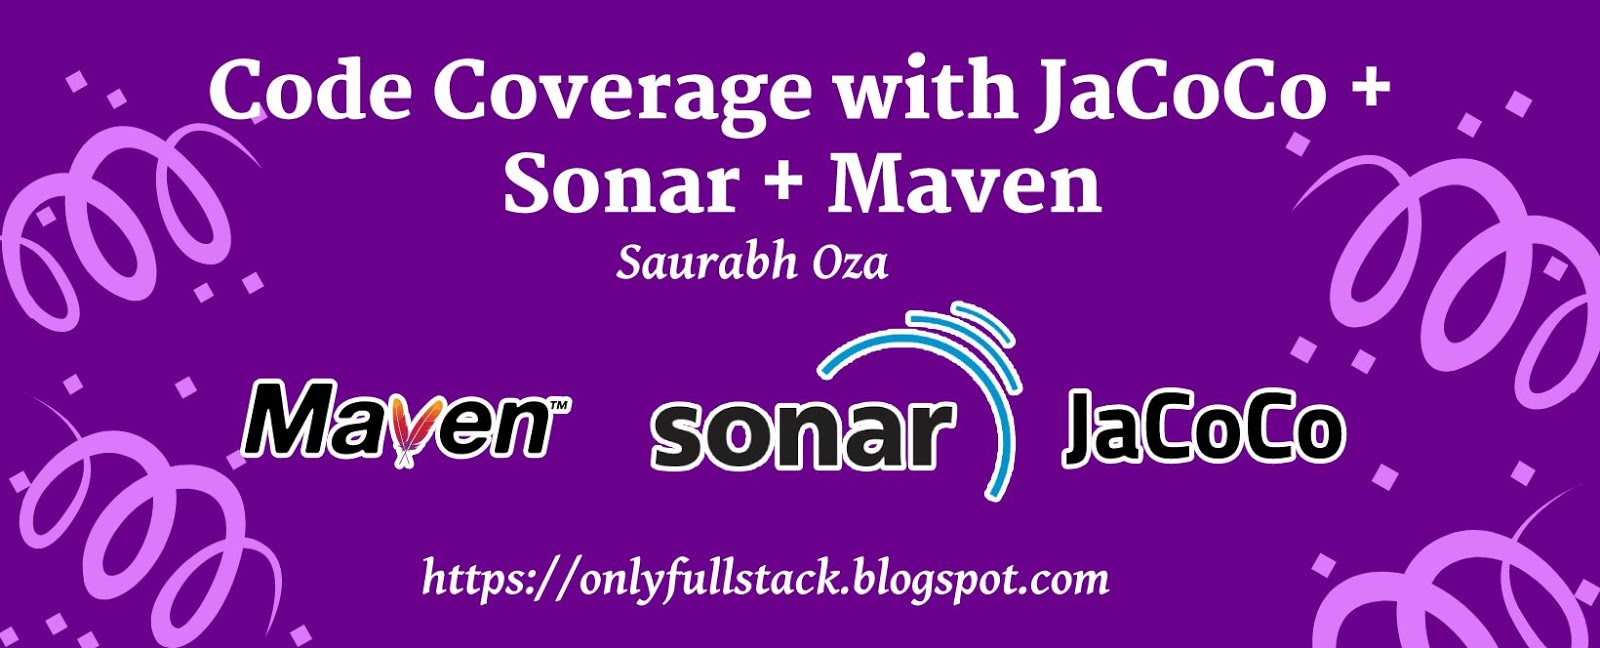 Code Coverage with JaCoCo, Sonar and Maven